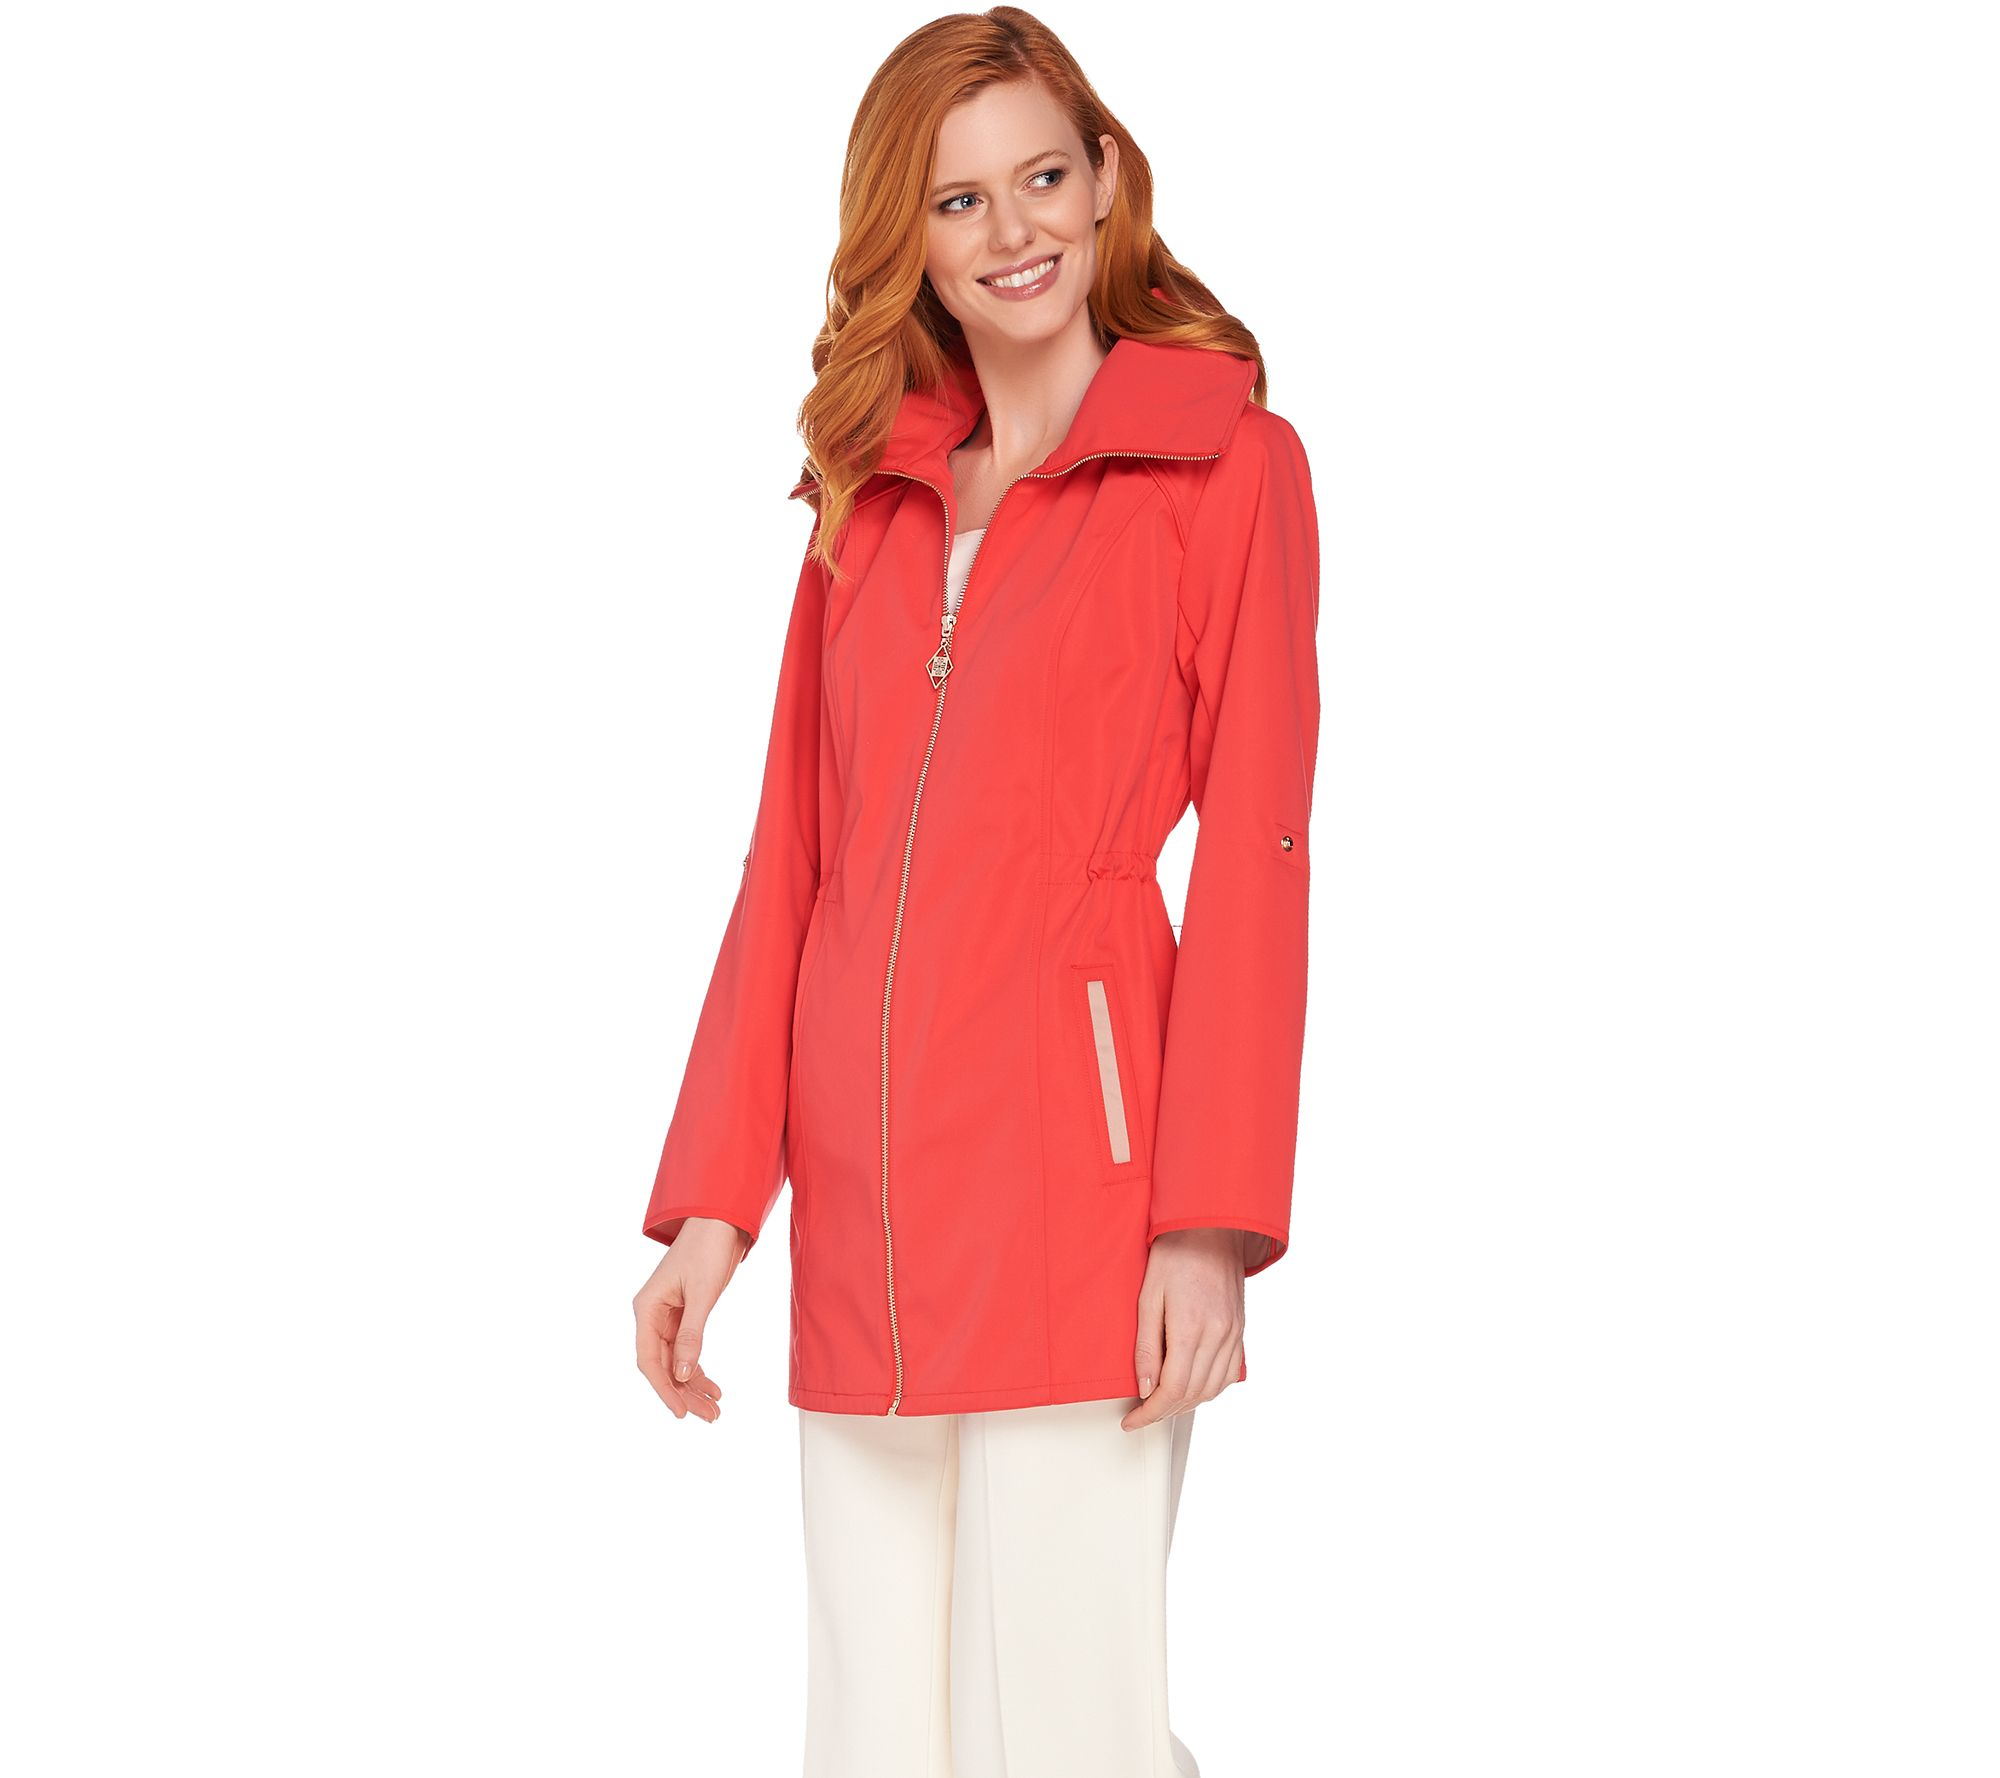 Coats Jackets & Vests for Women — QVC.com